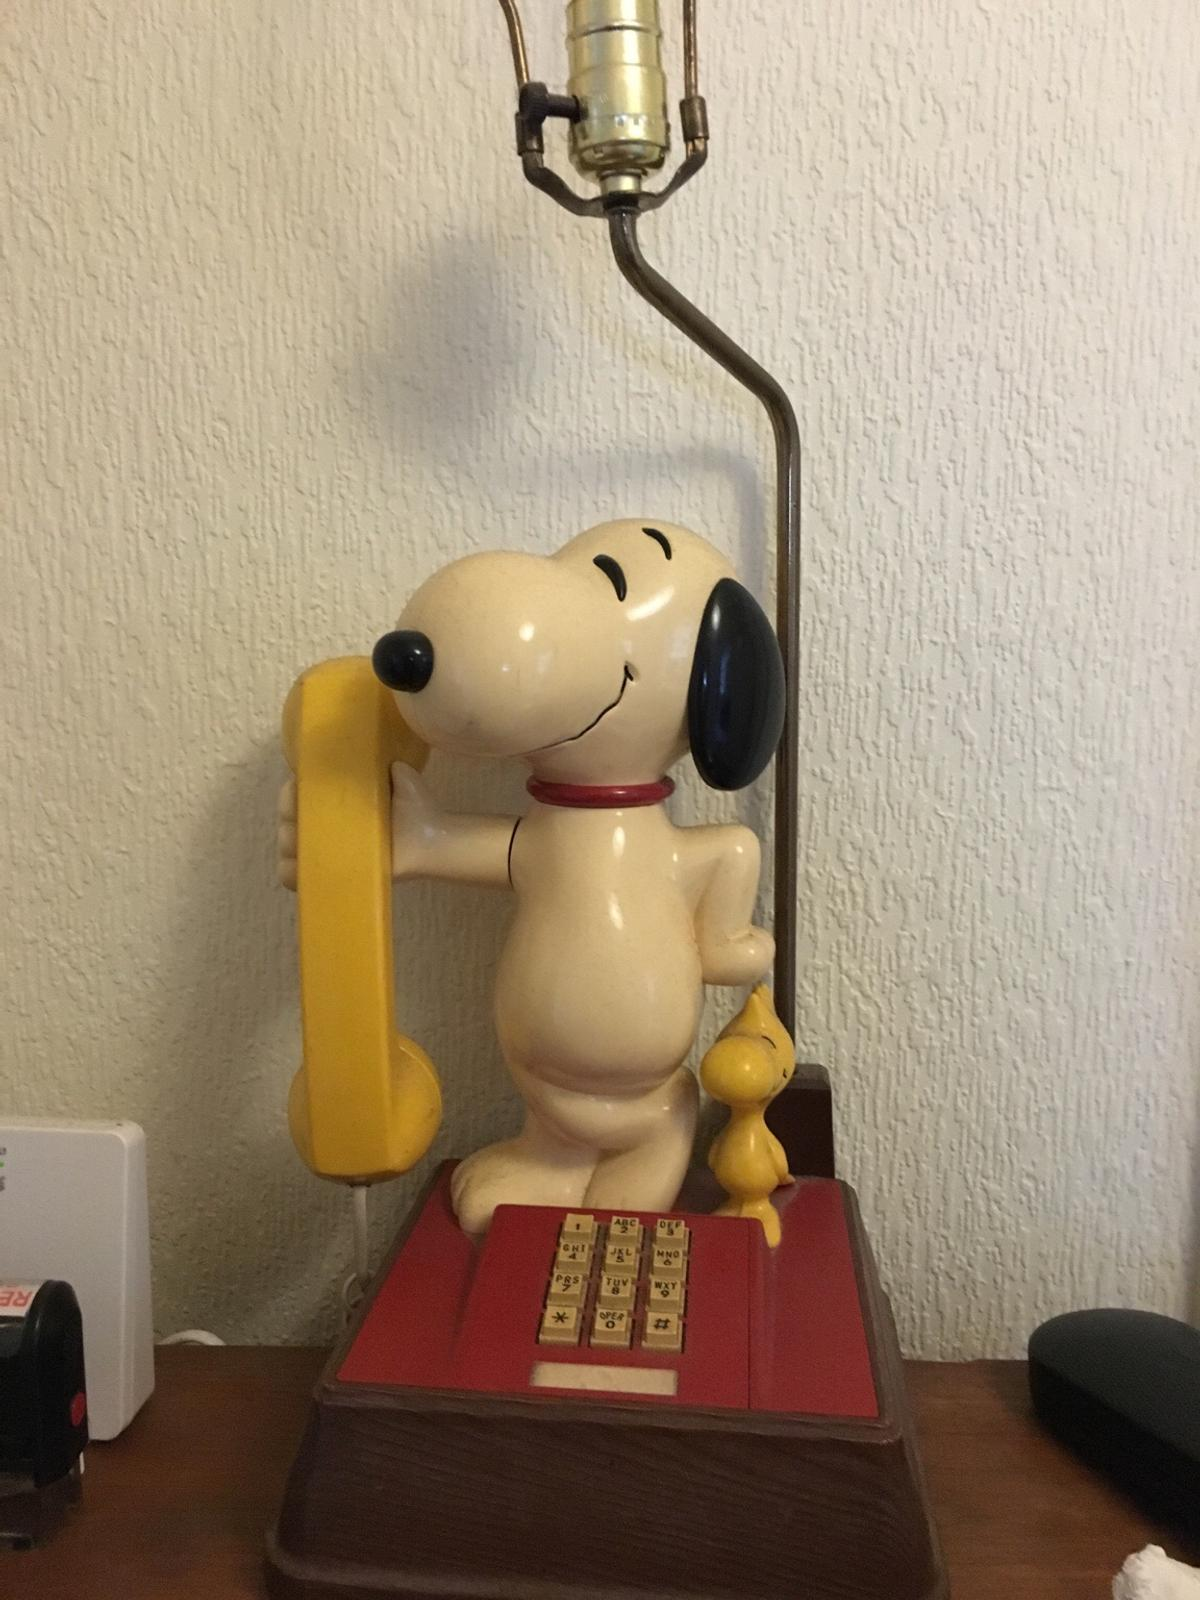 Brilliant Cool Vintage Snoopy Phone Lamp 1970S In E9 London For 90 00 For Wiring Database Numdin4X4Andersnl